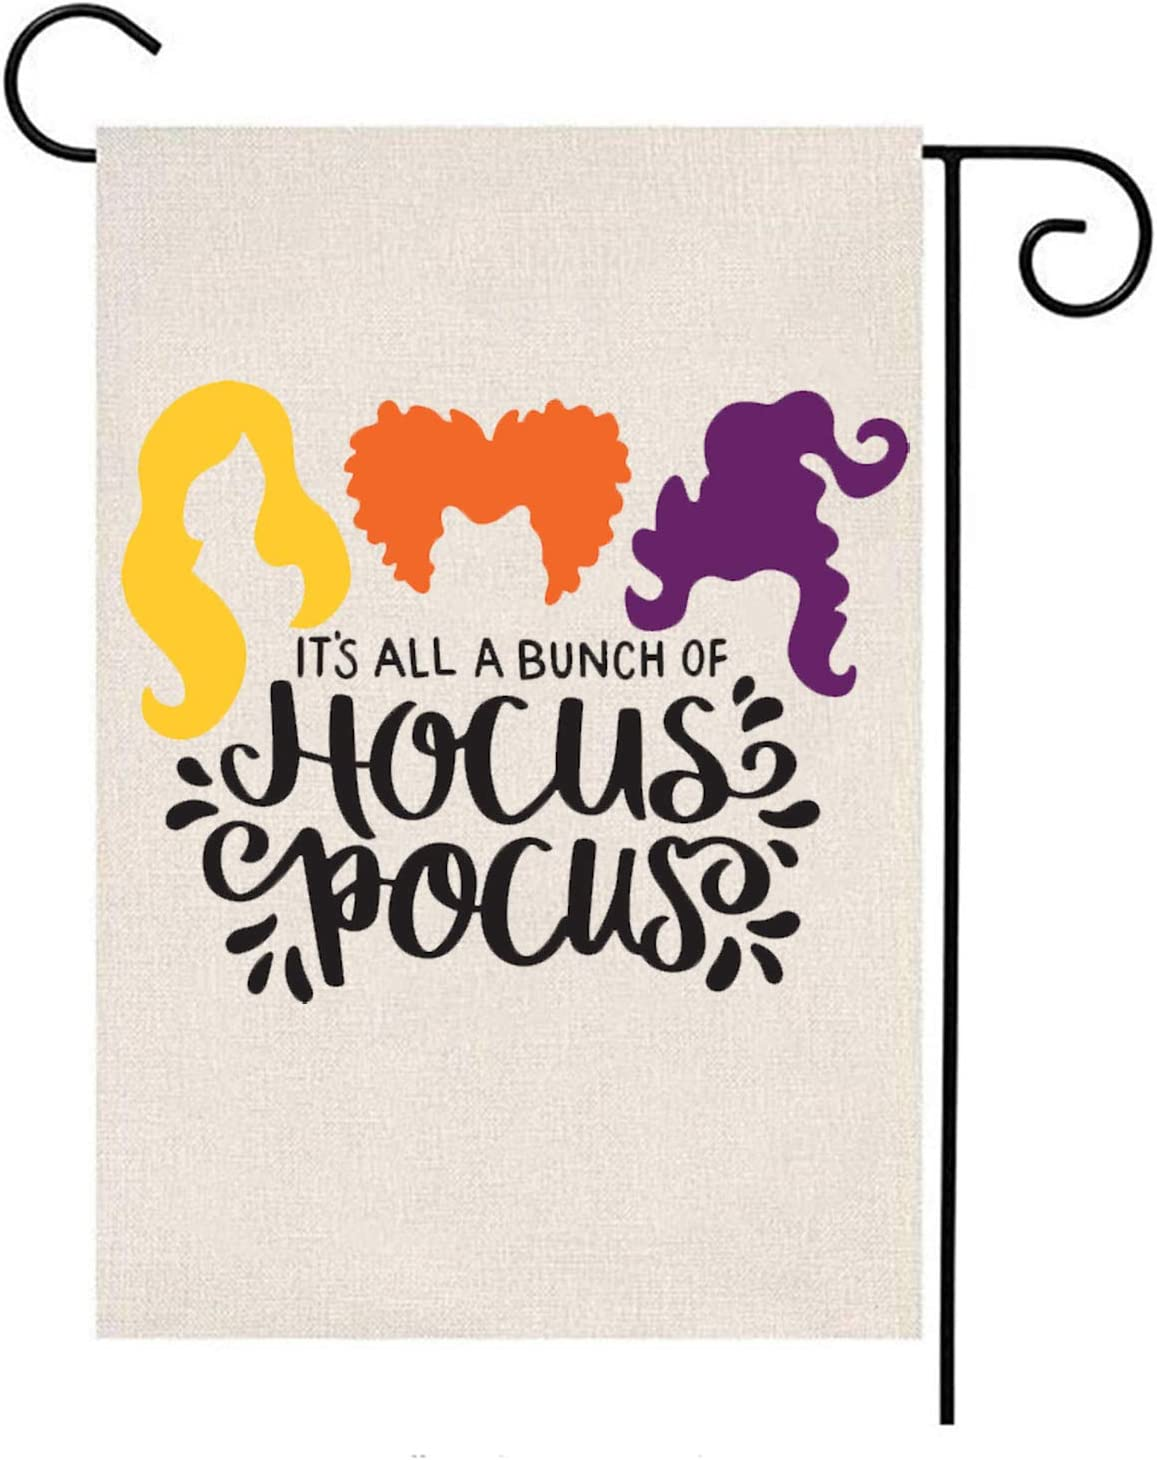 MFGNEH It's All A Bunch of Hocus Pocus Double Sided Sanderson Sisters Halloween Decorations Garden Flag Burlap Yard Banner Lawn Outdoor Decor 12 x 18 Inch,Halloween Decor